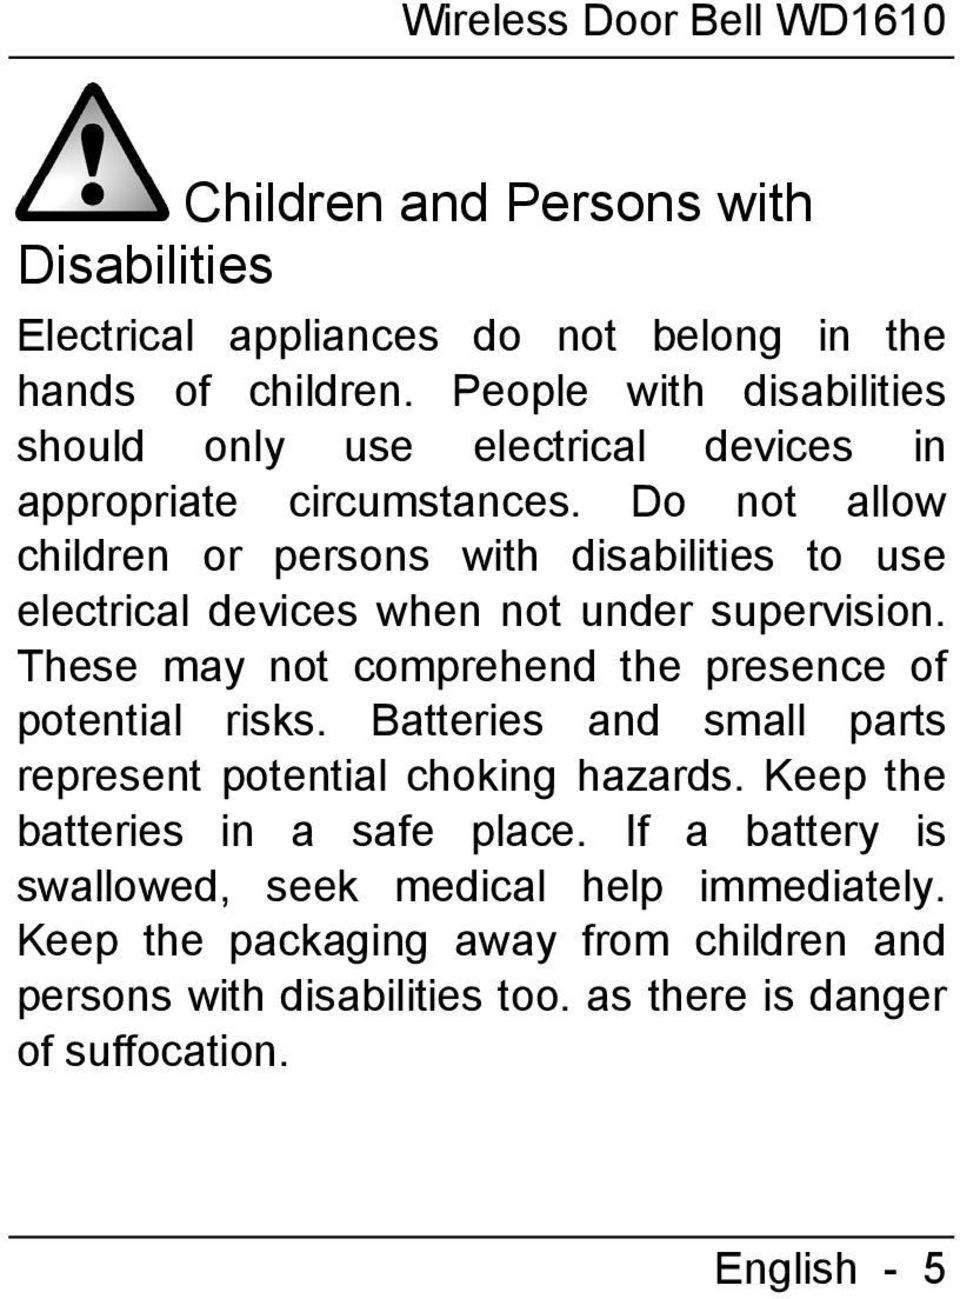 Do not allow children or persons with disabilities to use electrical devices when not under supervision. These may not comprehend the presence of potential risks.